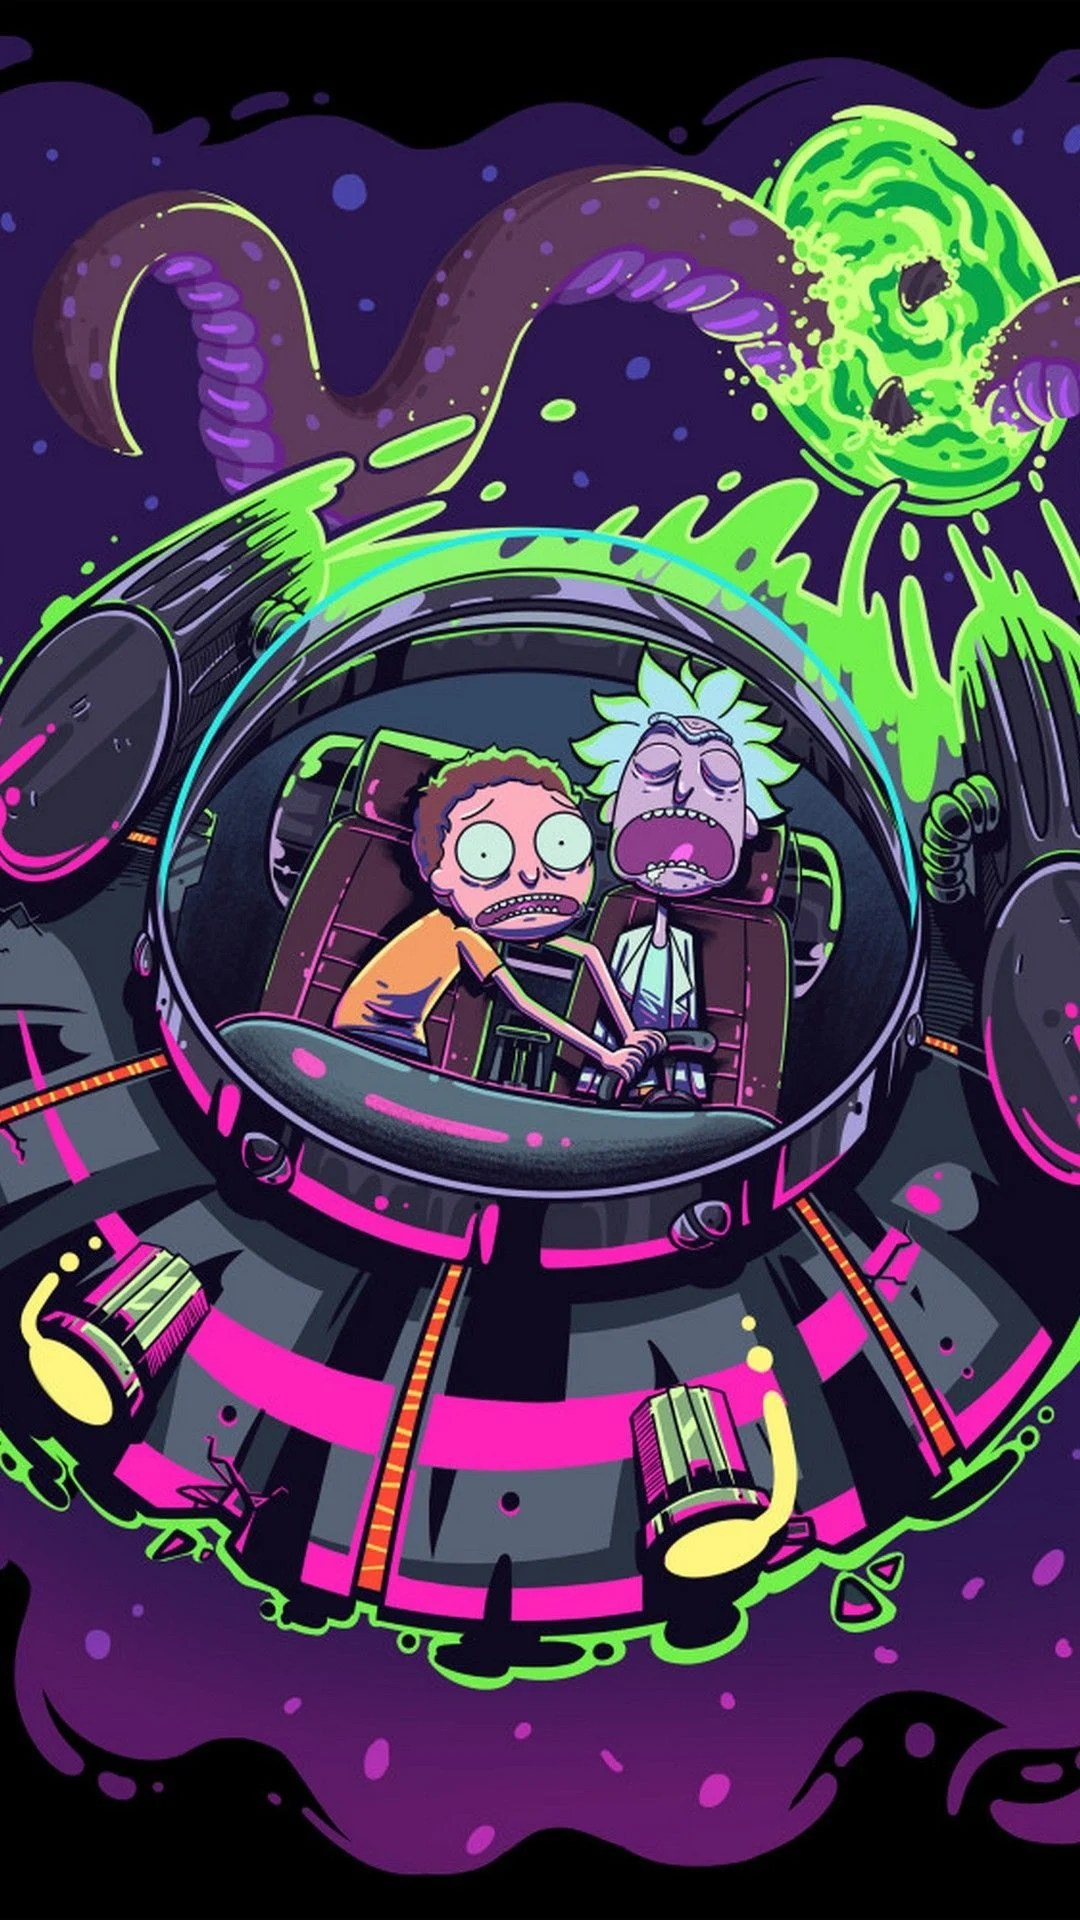 Rick And Morty Wallpaper Iphone : morty, wallpaper, iphone, Morty, 1080x1920, Wallpapers, Backgrounds, WallpaperAccess